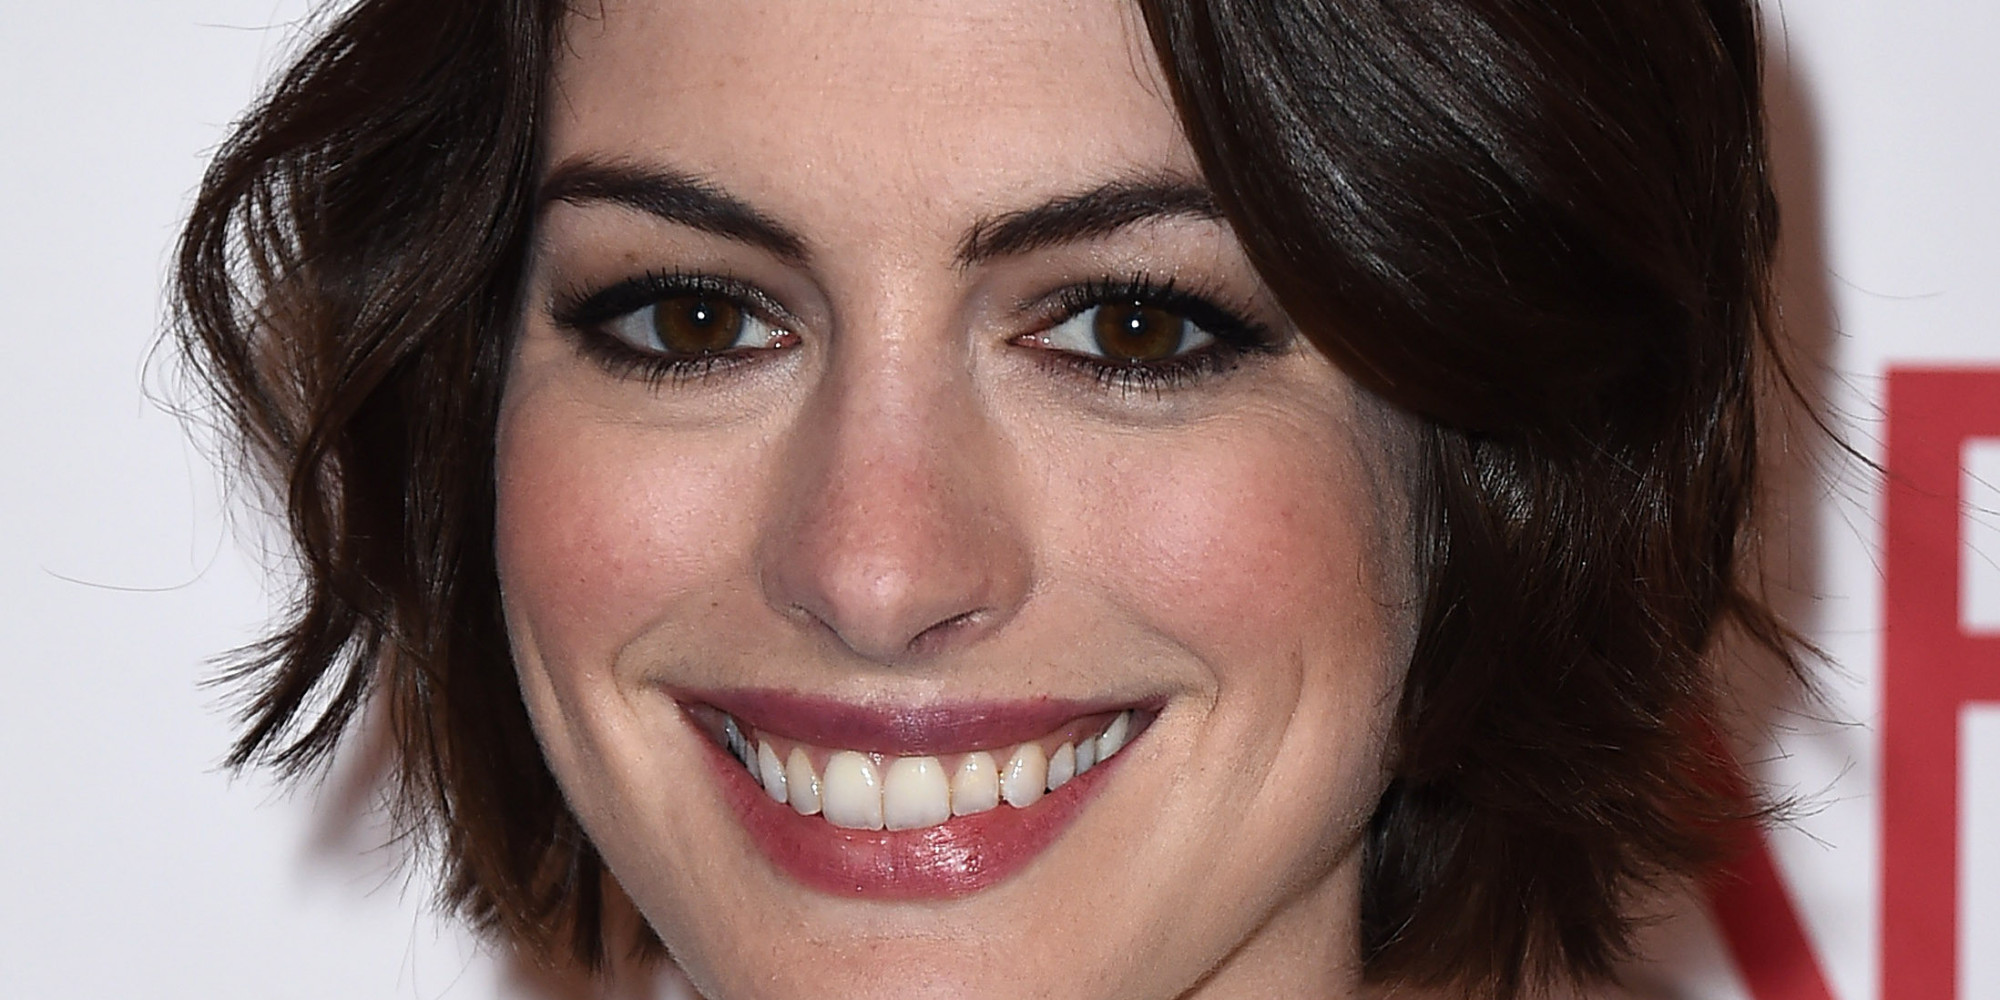 Anne Hathaway On Husband: 'I'm His And He's Mine' | HuffPost Anne Hathaway Facebook